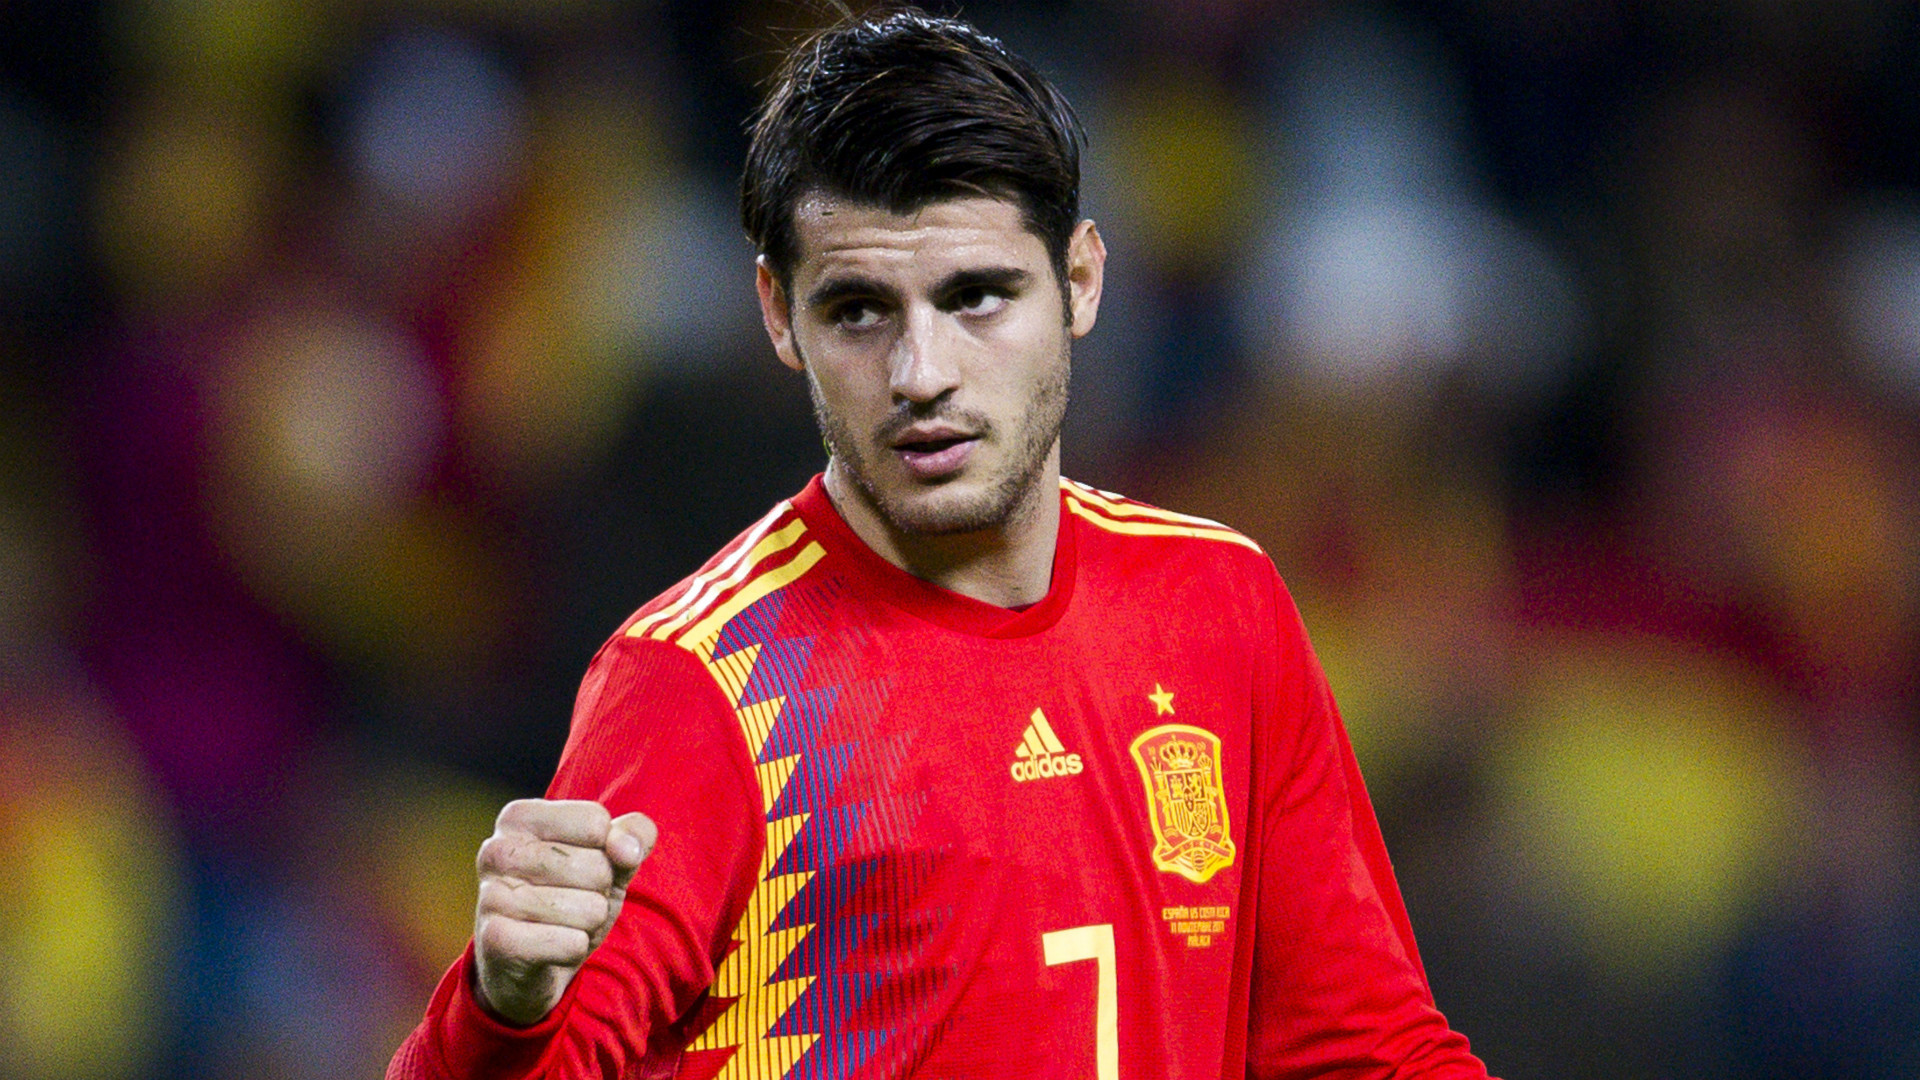 Spain national team wallpapers 2018 79 background pictures - Morata hd wallpapers ...